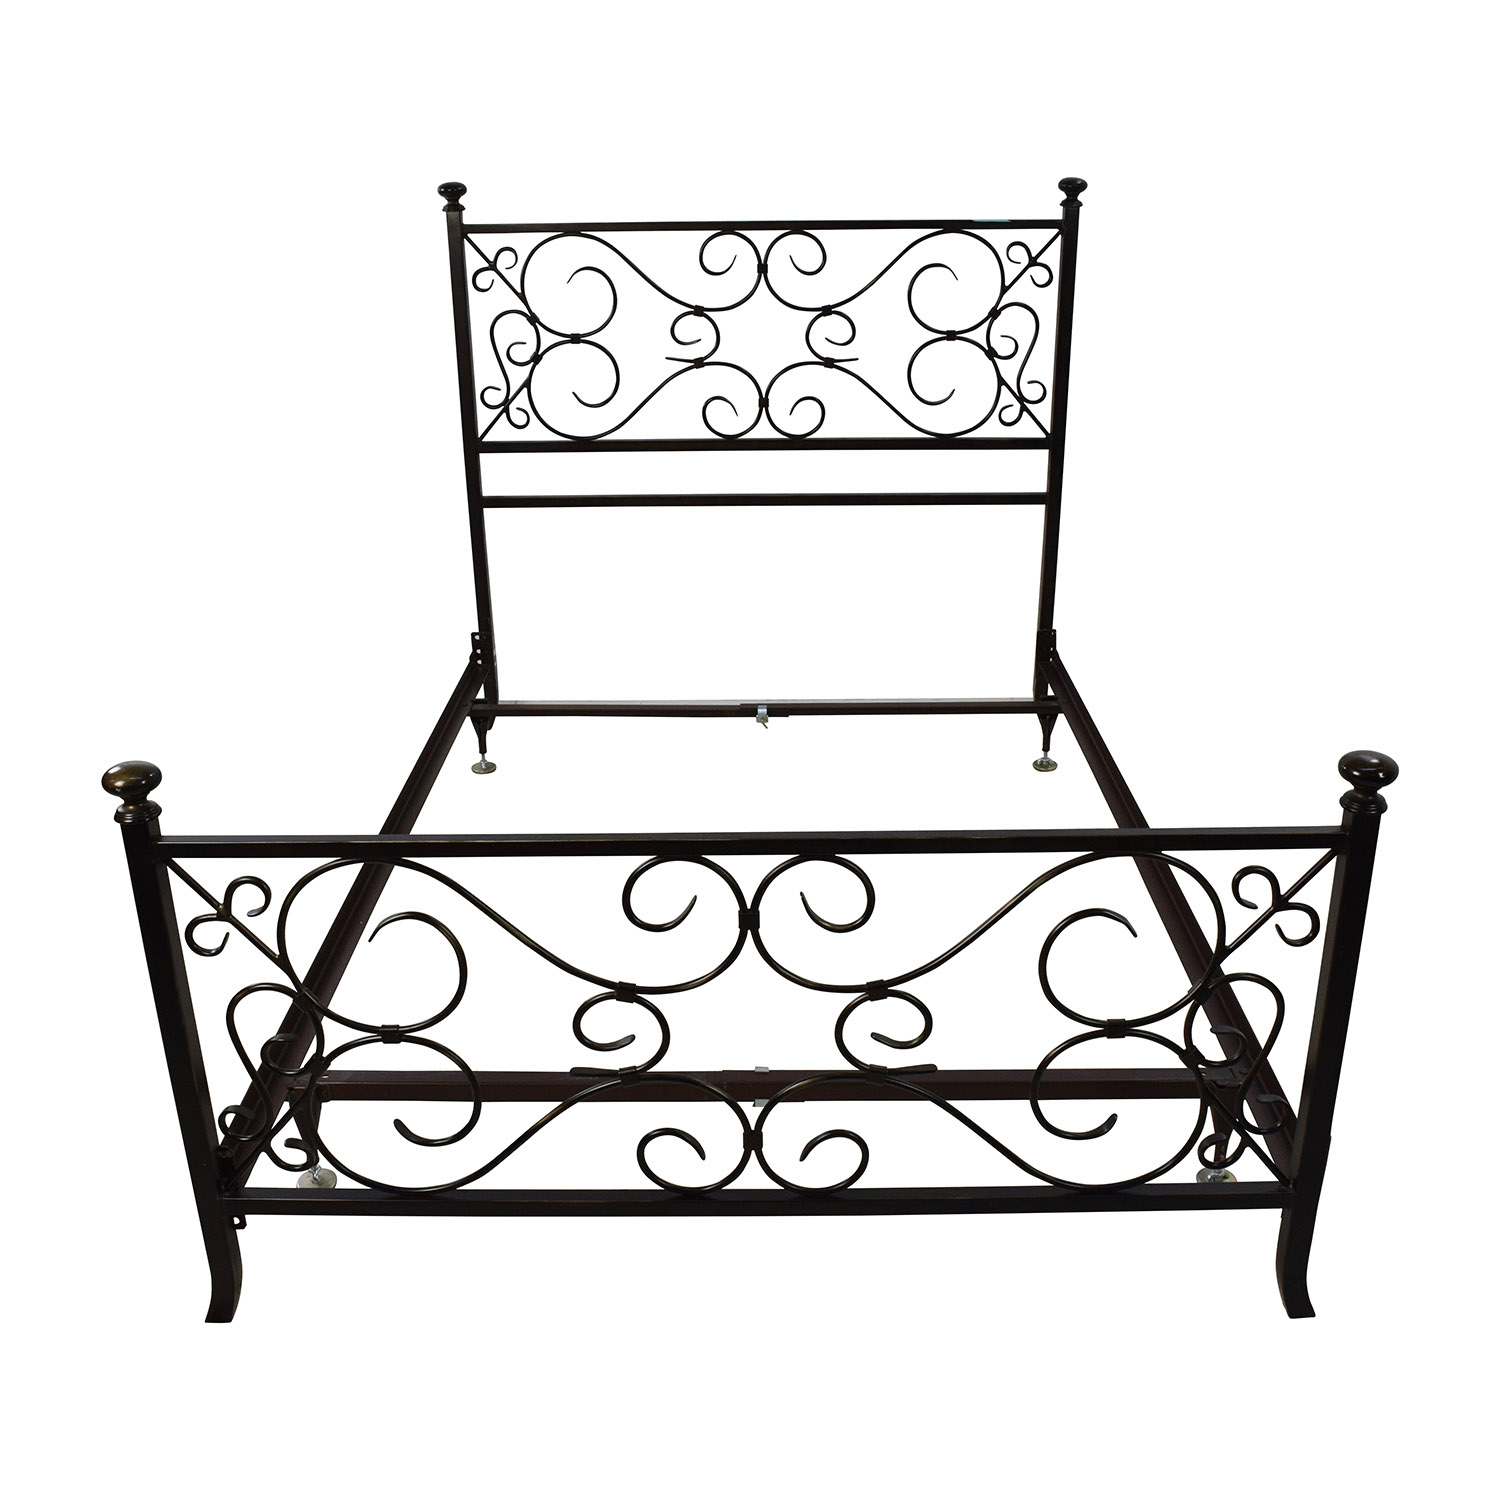 buy Black Scrolled Metal Bed Frame online